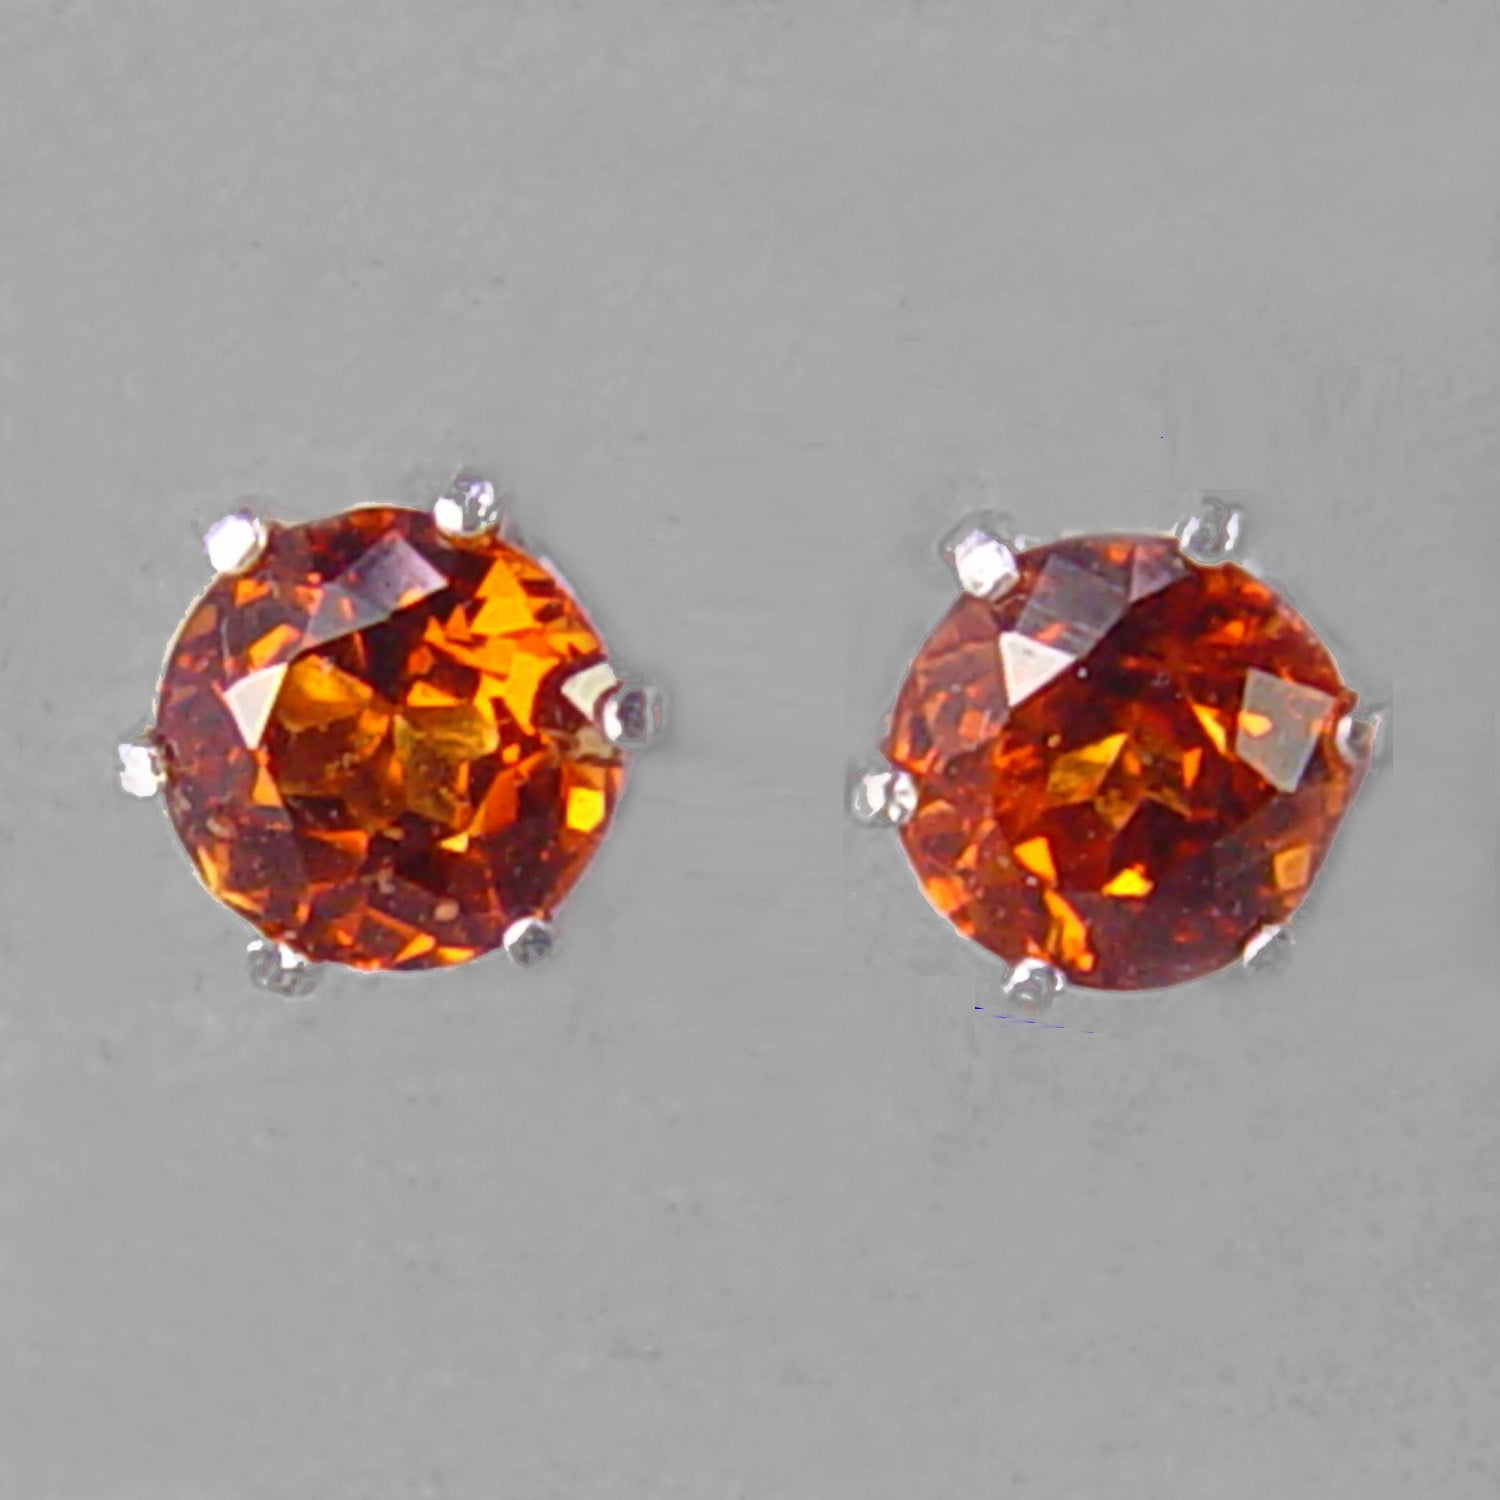 Red Hessonite Garnet Faceted Round Sterling Silver Post Earrings - 2 CTW